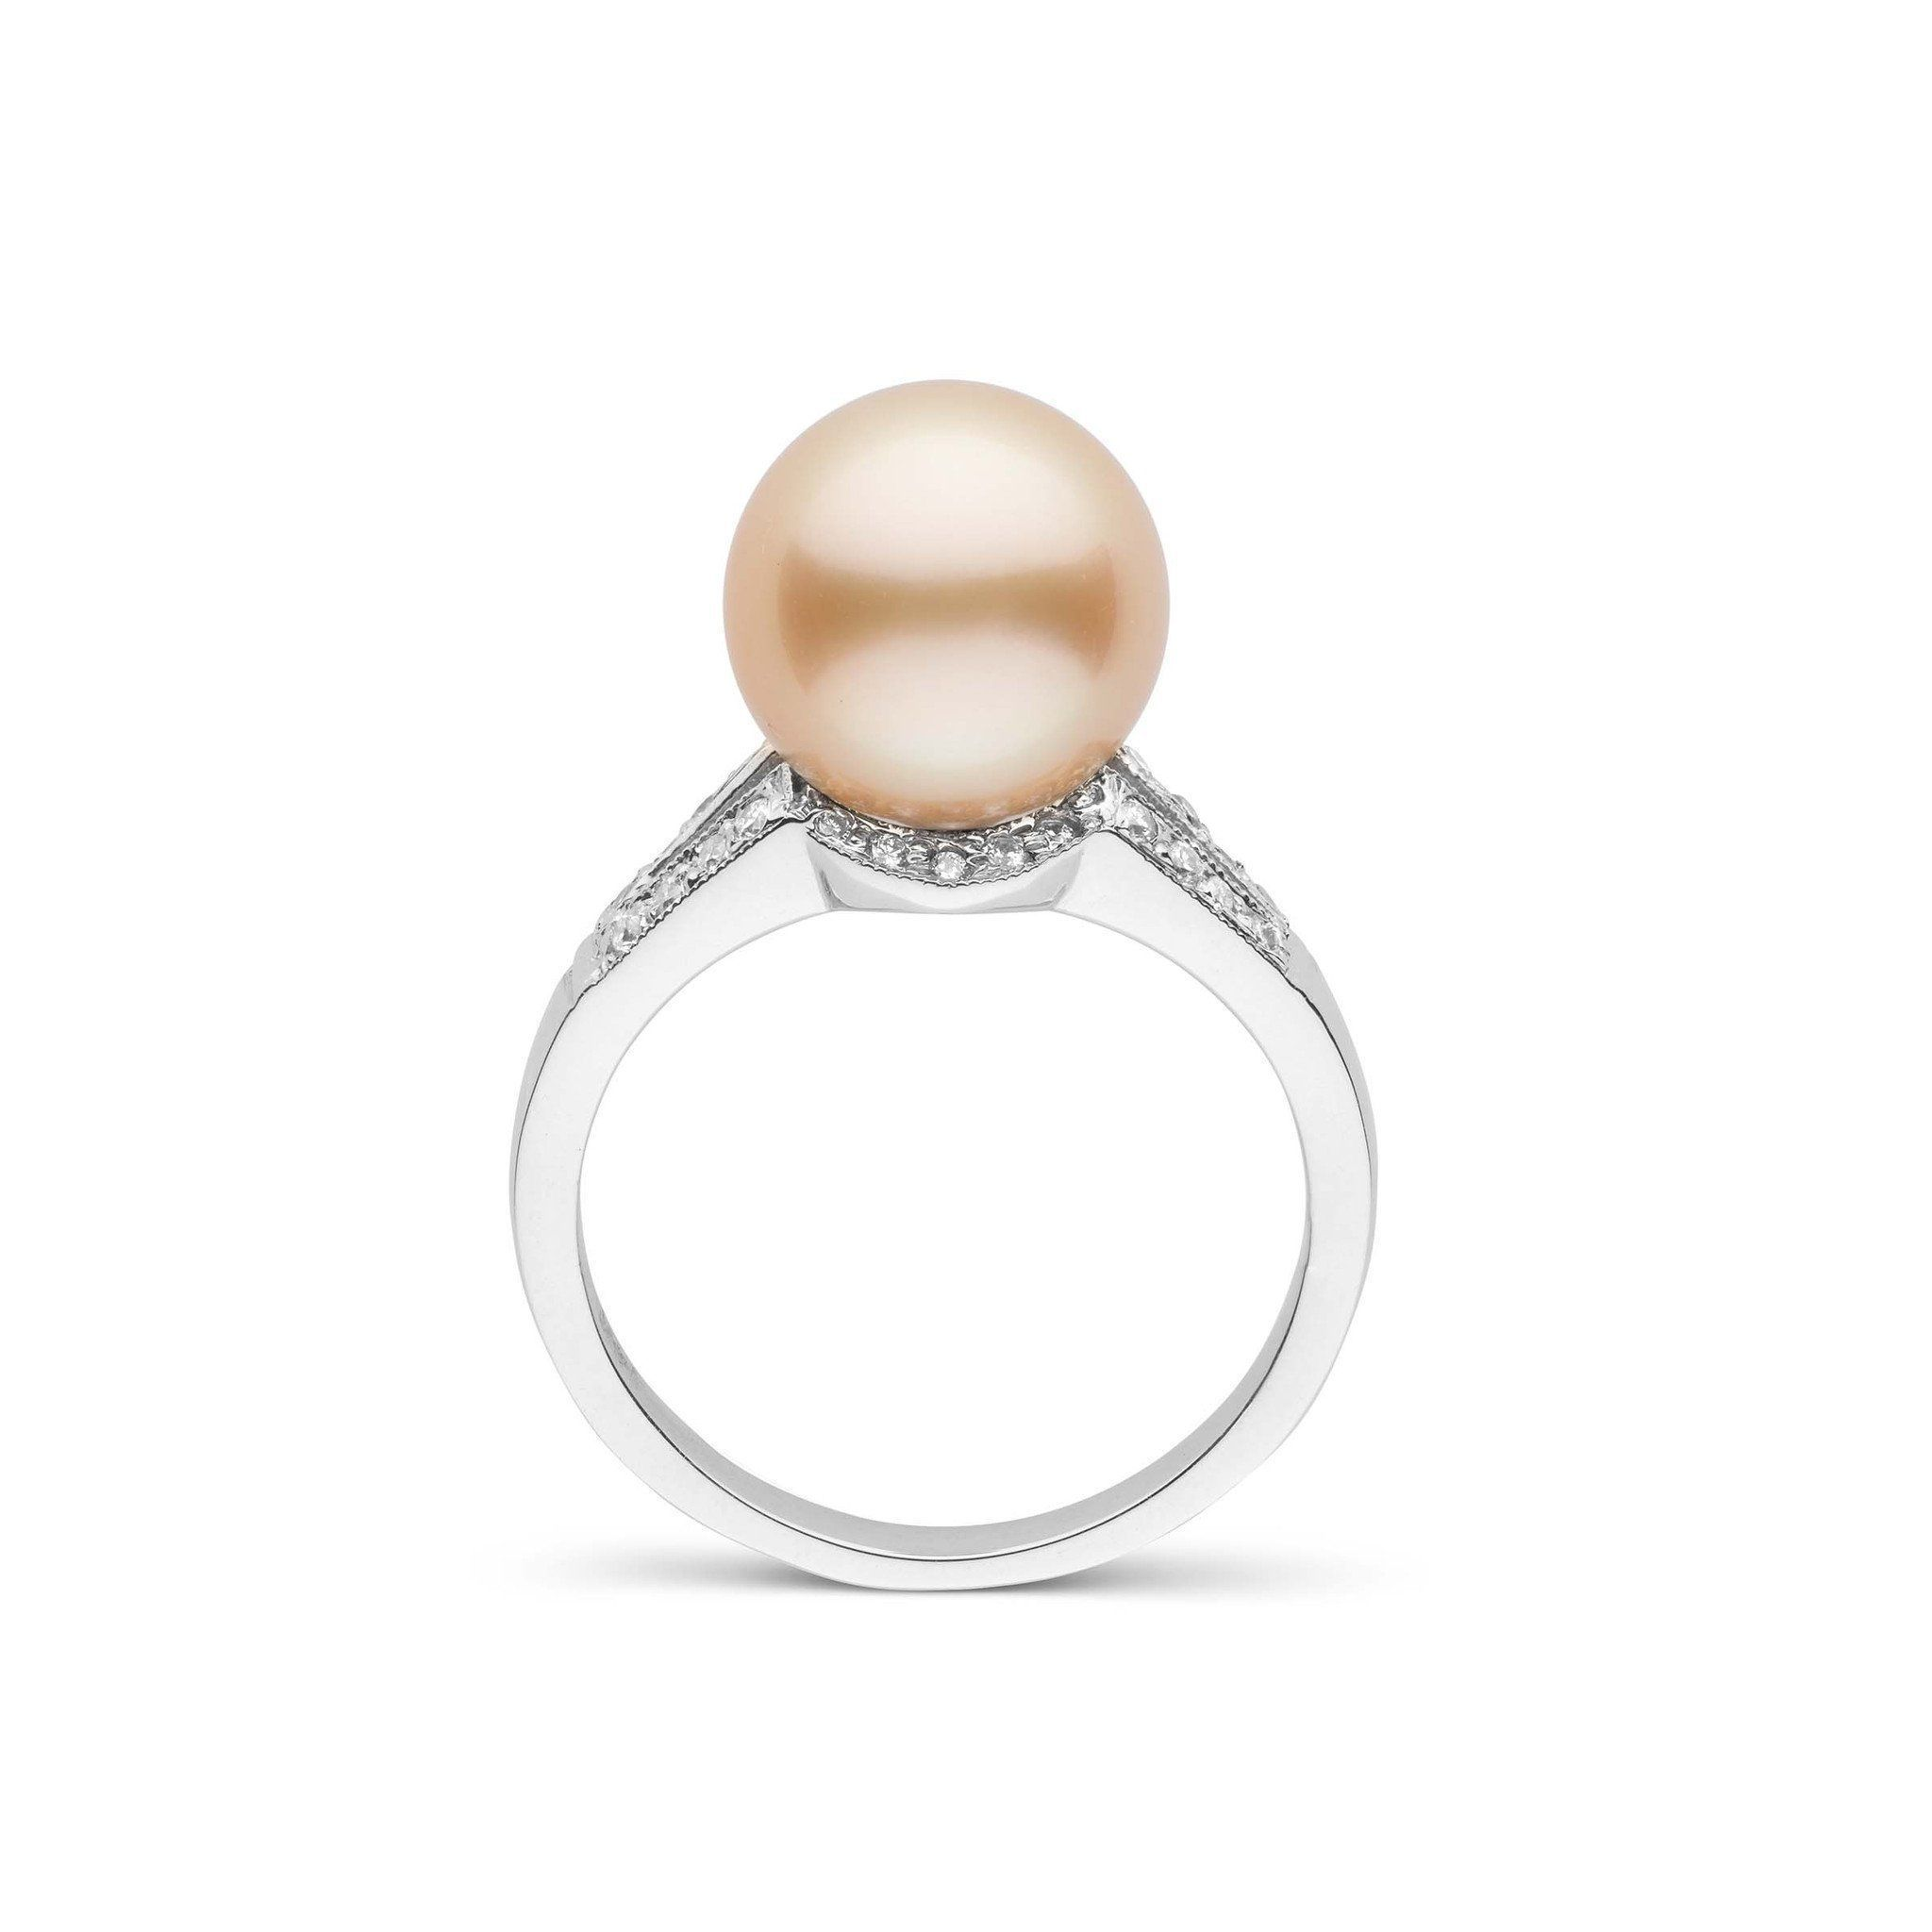 Vixen Collection Golden South Sea Pearl Ring 14K